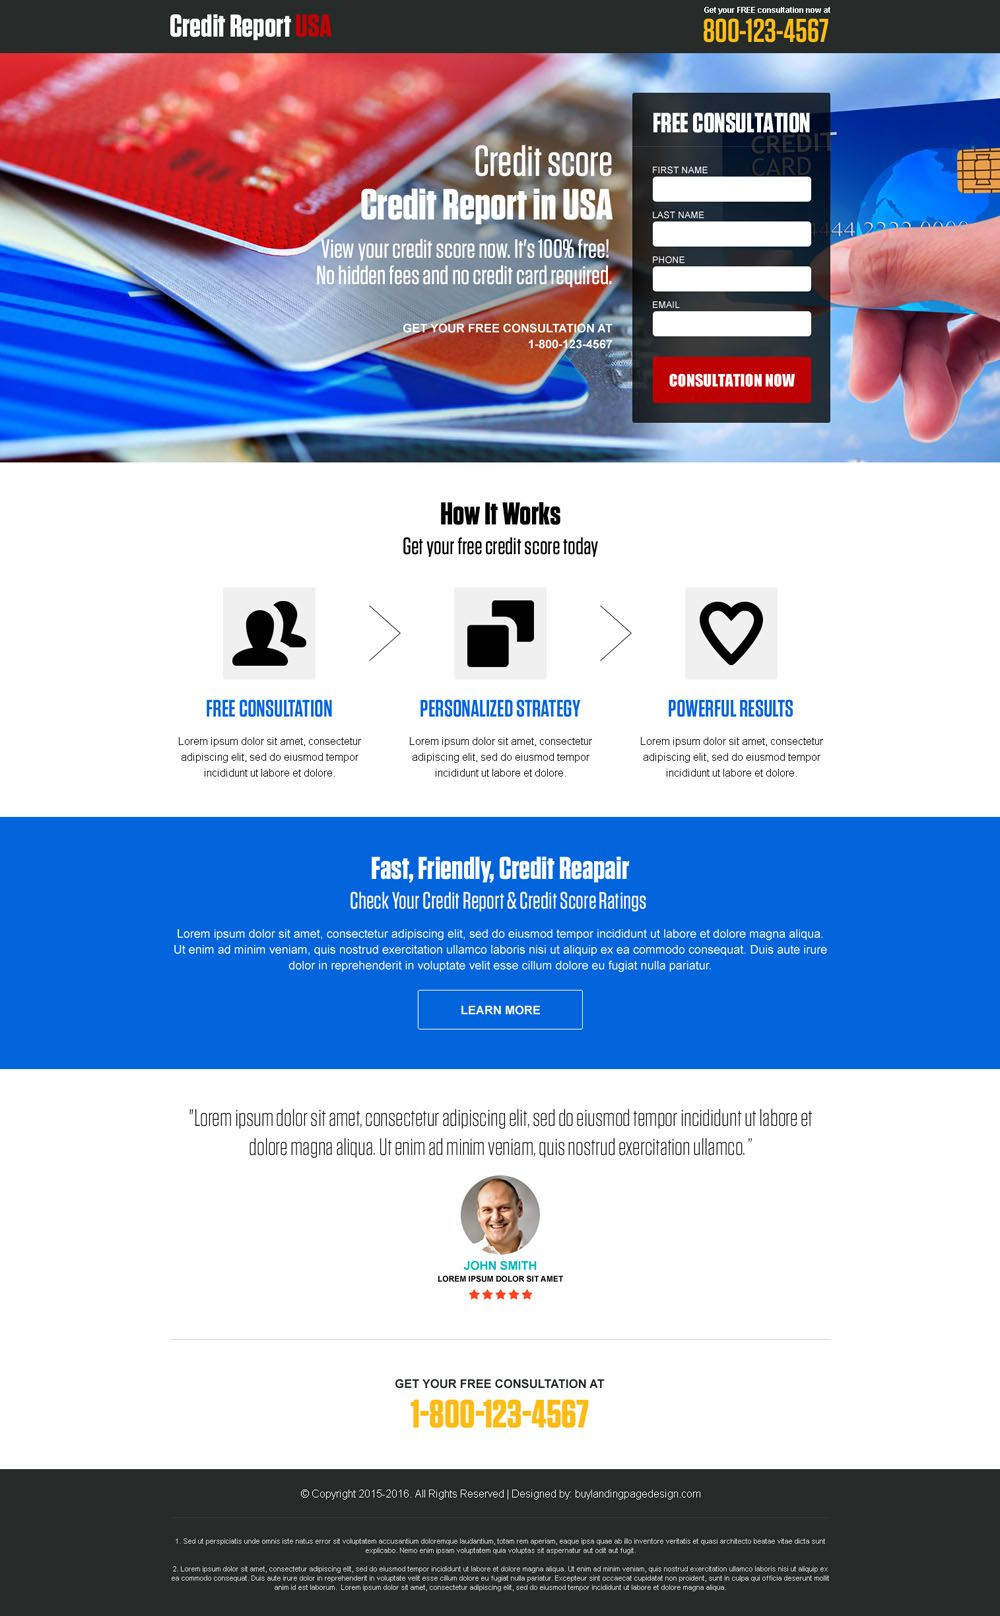 Responsive credit report free consultation landing page design responsive credit report free consultation landing page design altavistaventures Choice Image